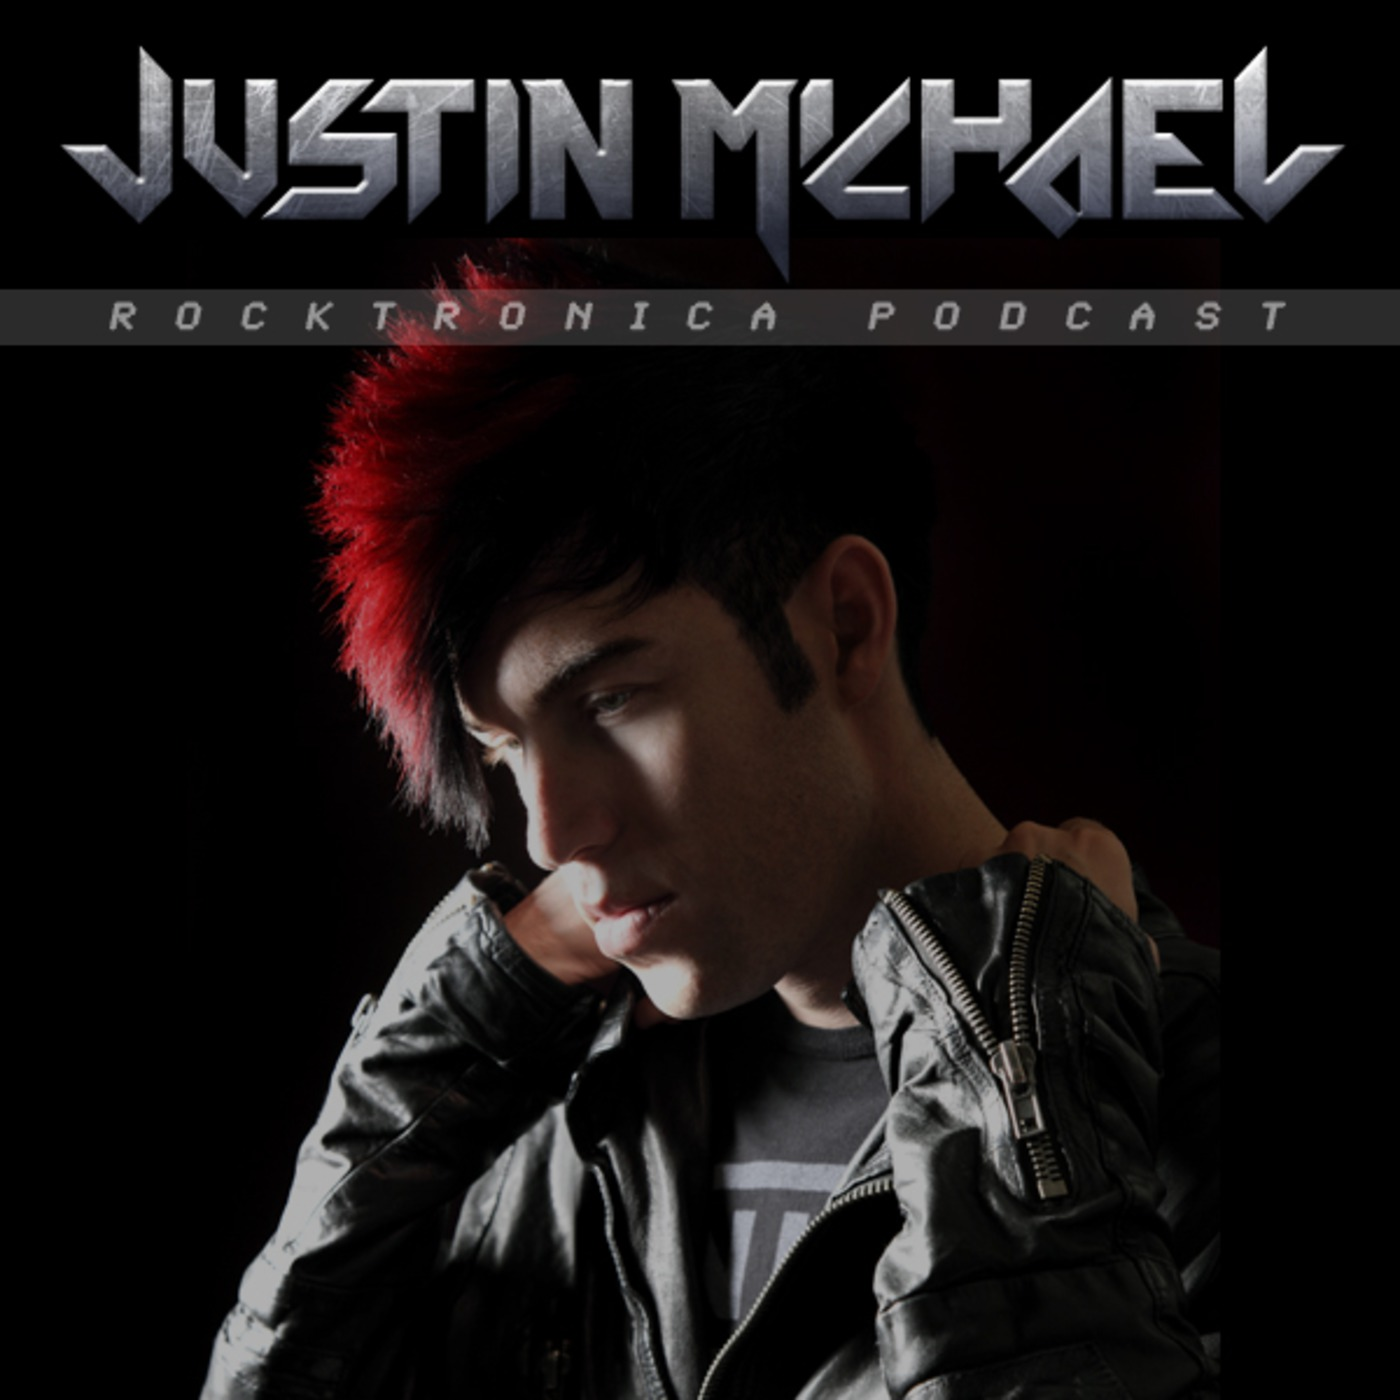 Justin Michael's Rocktronica Podcast